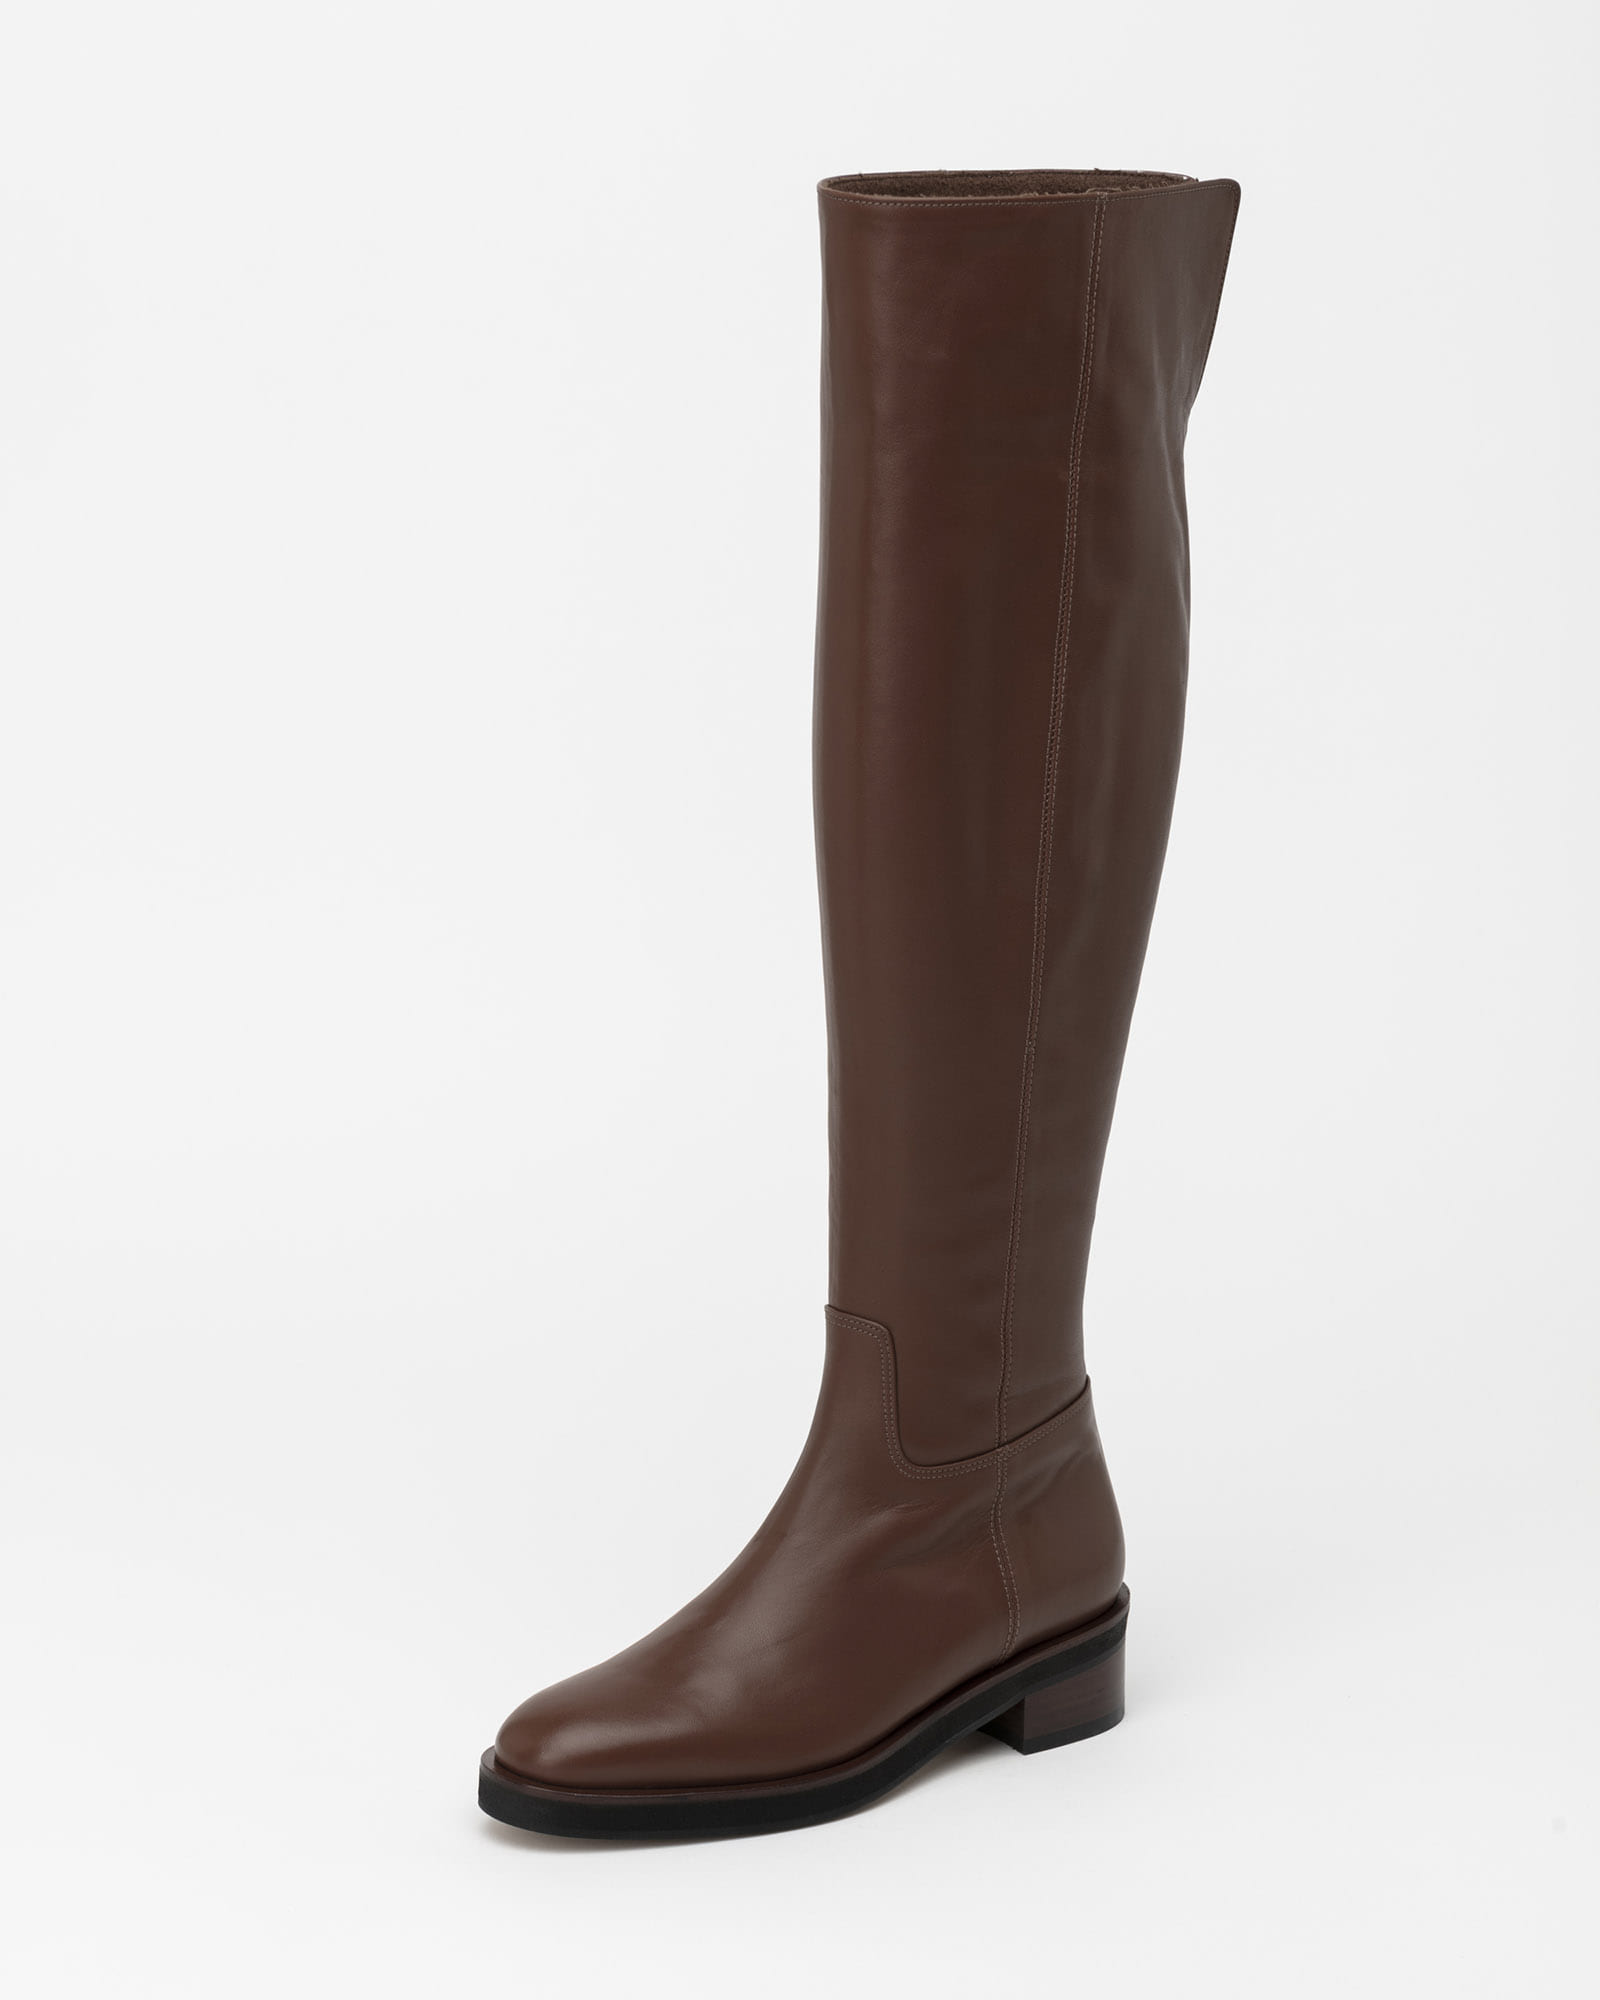 Lisee Wool Lining Boots in Deep Camel